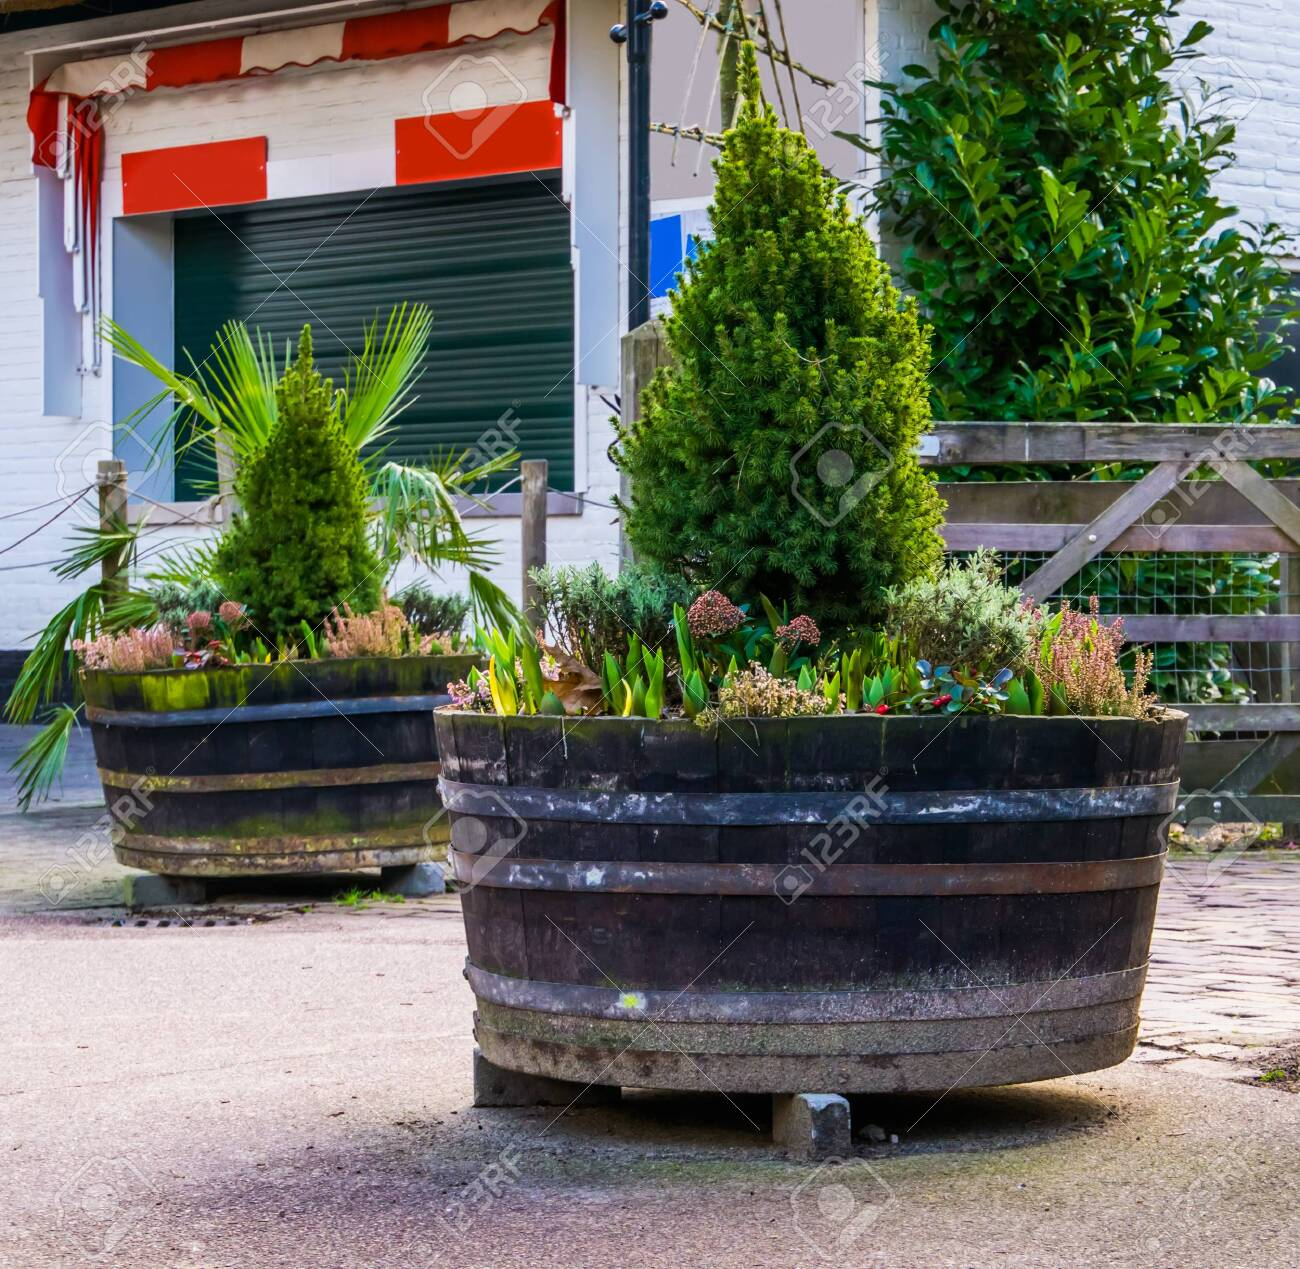 Wooden Tubs Filled With Plants And Flowers Garden And Outdoor